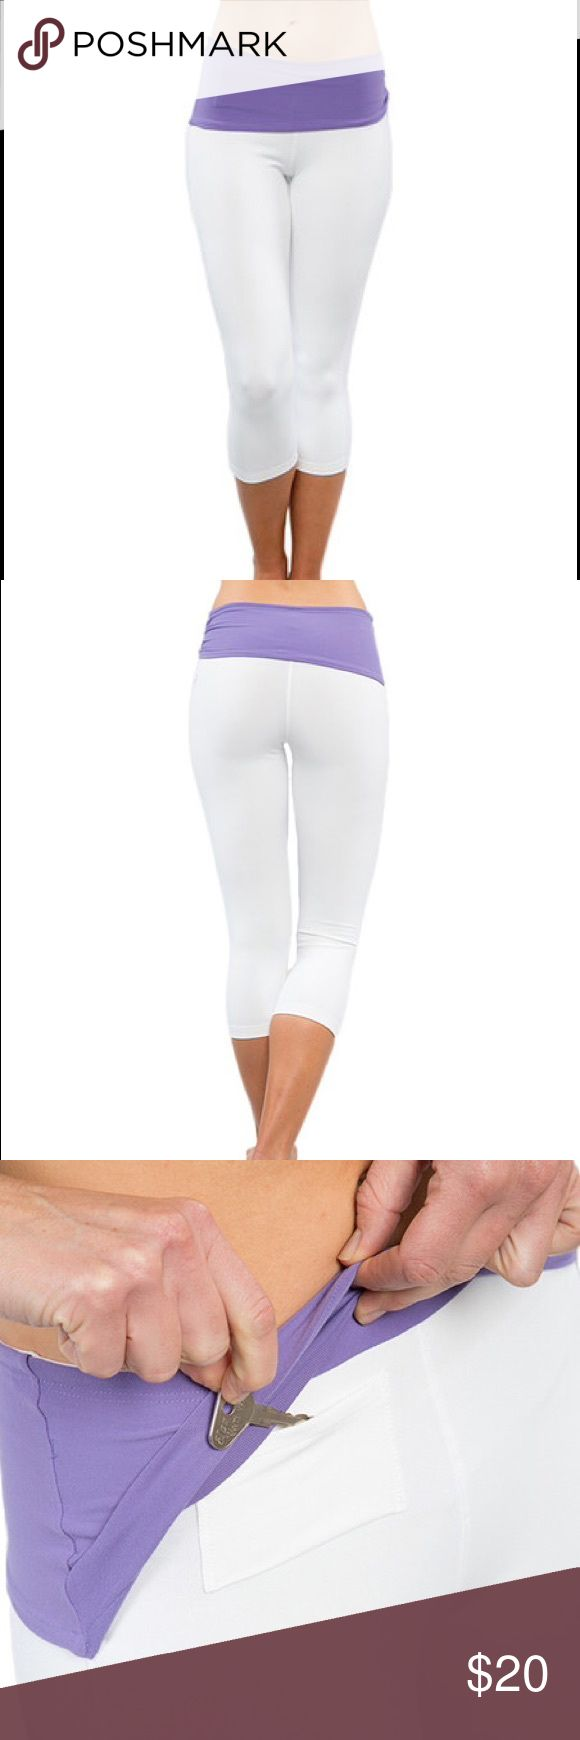 White Capri leggings! Completely curve complementing capris. Moisture-wicking properties and four-way stretch fabric ensure comfort is never compromised, while flat-lock, chafe-free seams offer long, lean leg contouring. The asymmetrical, shirred waistband slims the waistline, and the vented gusset ensures breathability and free range of motion. Plus, a hidden back pocket sneakily stores small necessities. * 19'' inseam * Self: 87% Supplex nylon / 13% Lycra spandex * Lining: 57% polyester…